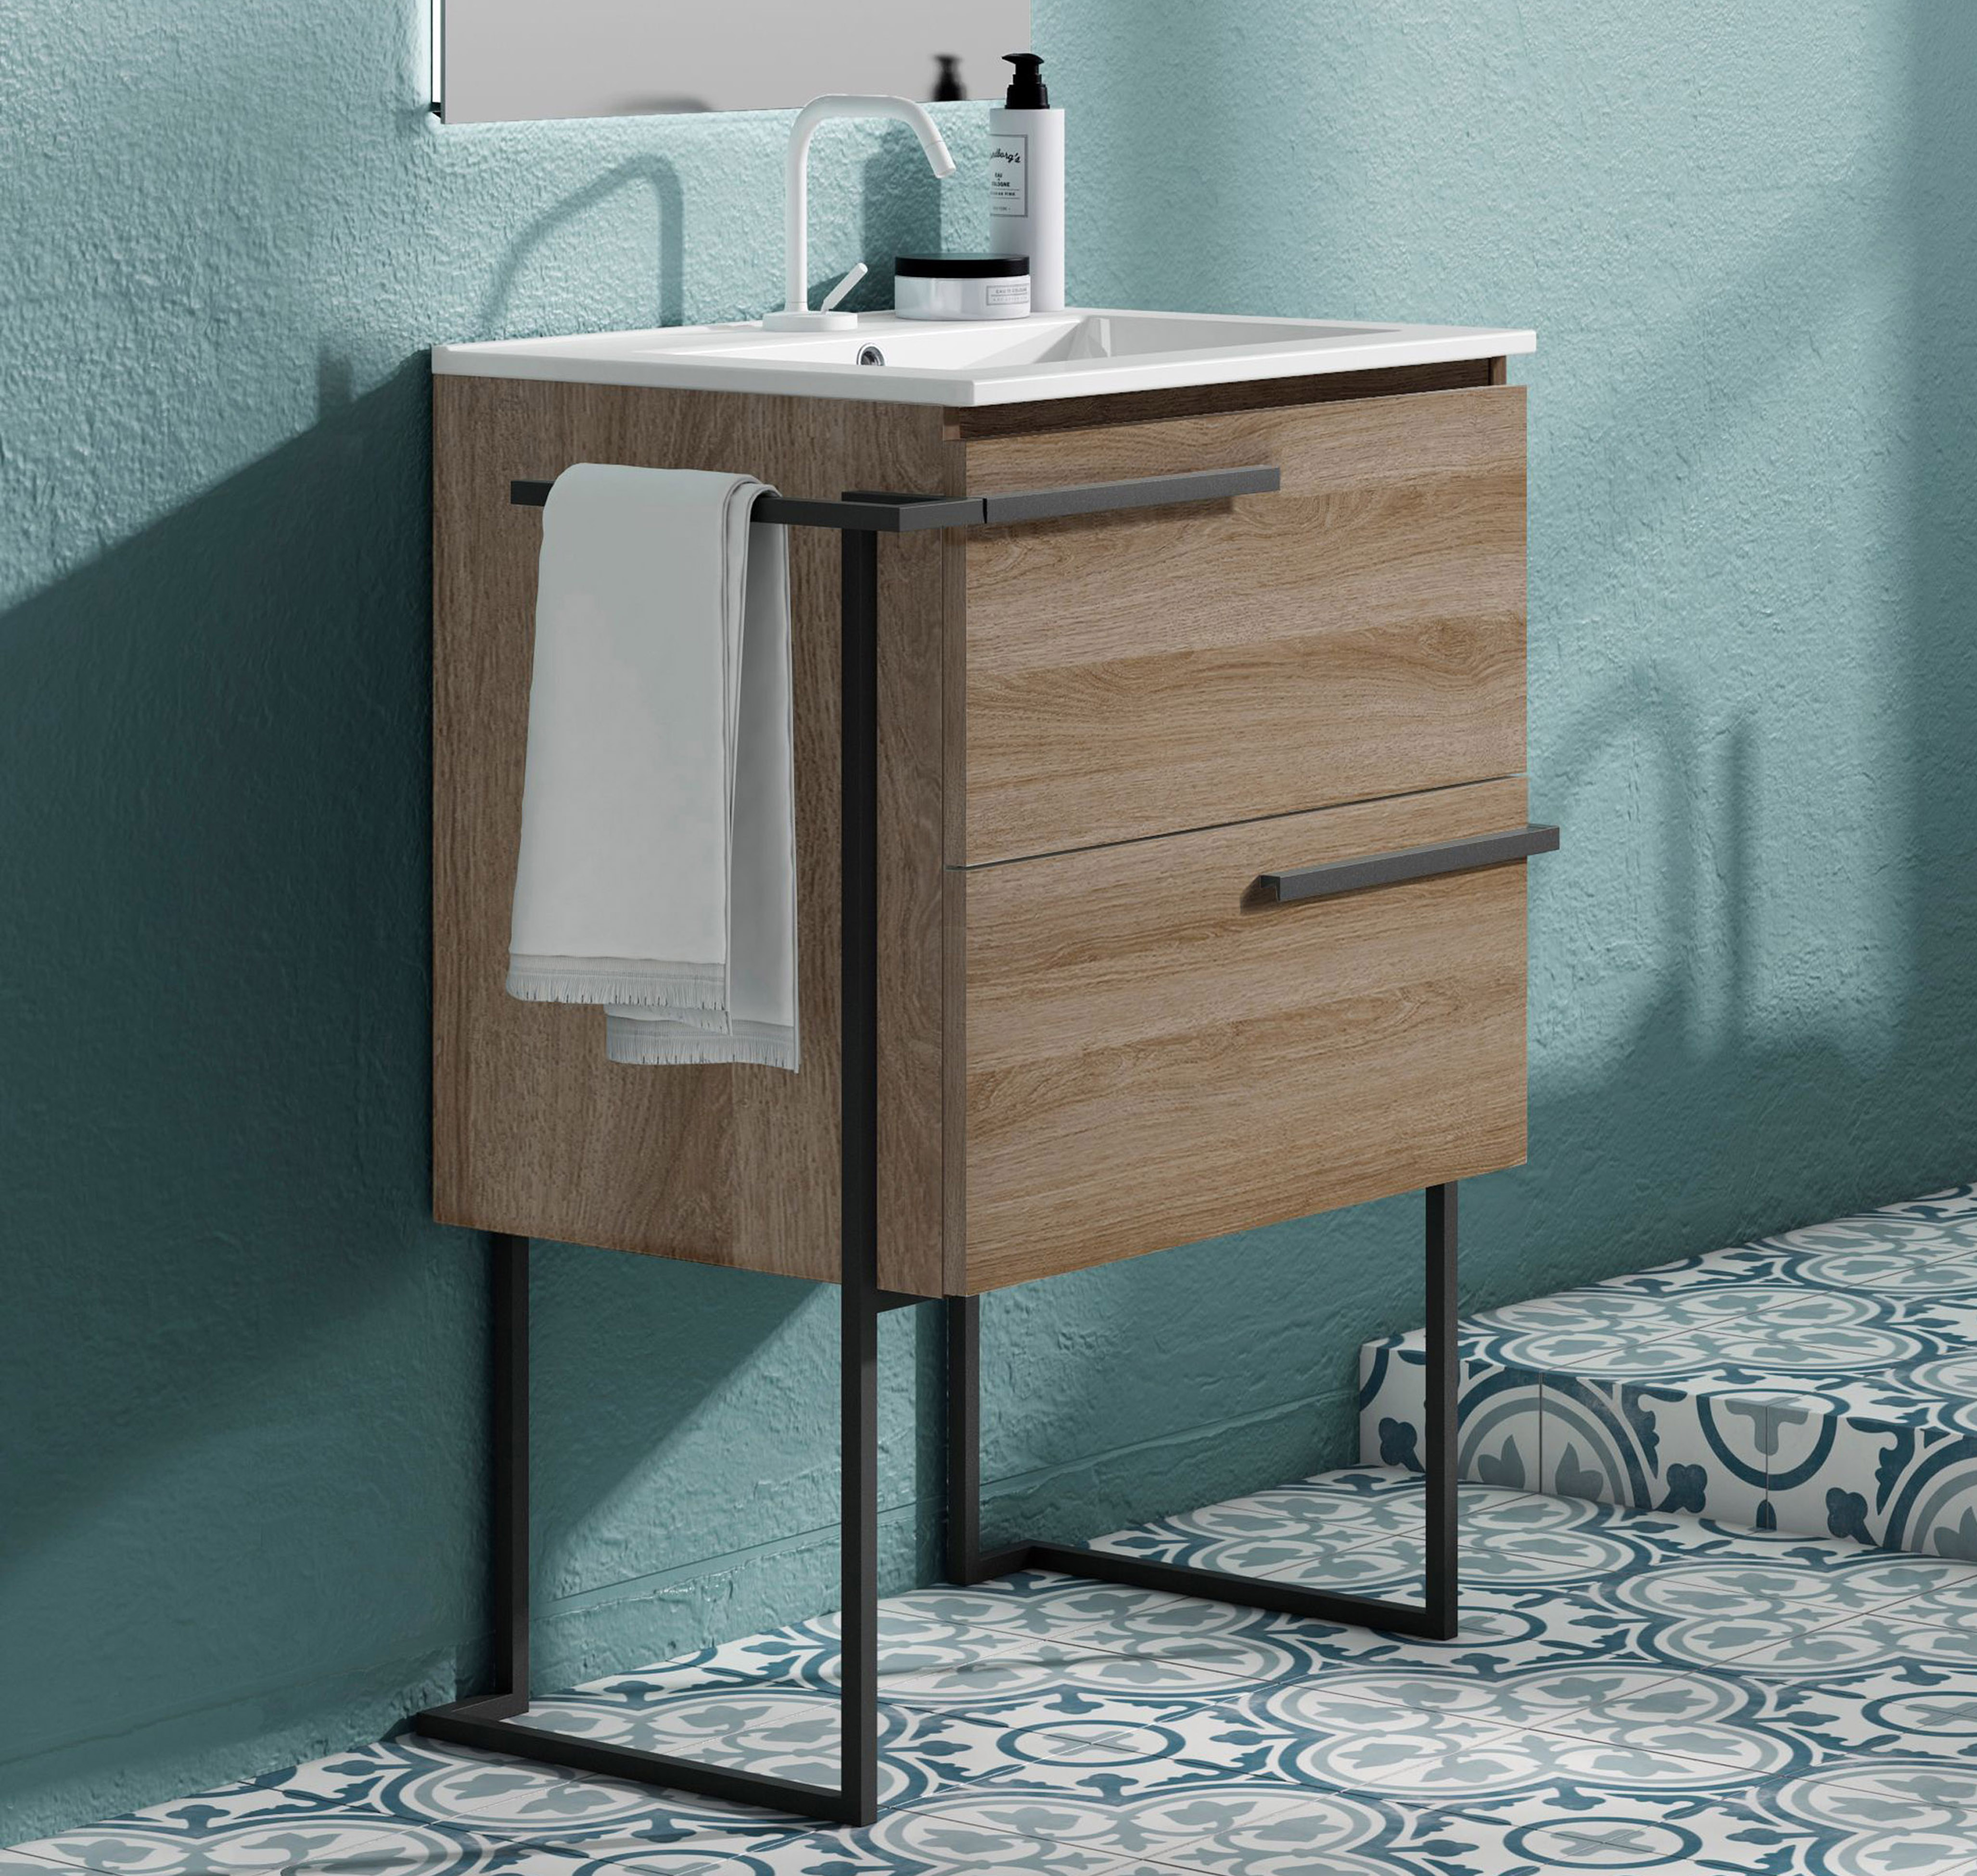 """24"""" Single Sink Vanity 2 Drawer, Ceramic Sink with Metal Legs and Towel Bar and 4 Color Options"""